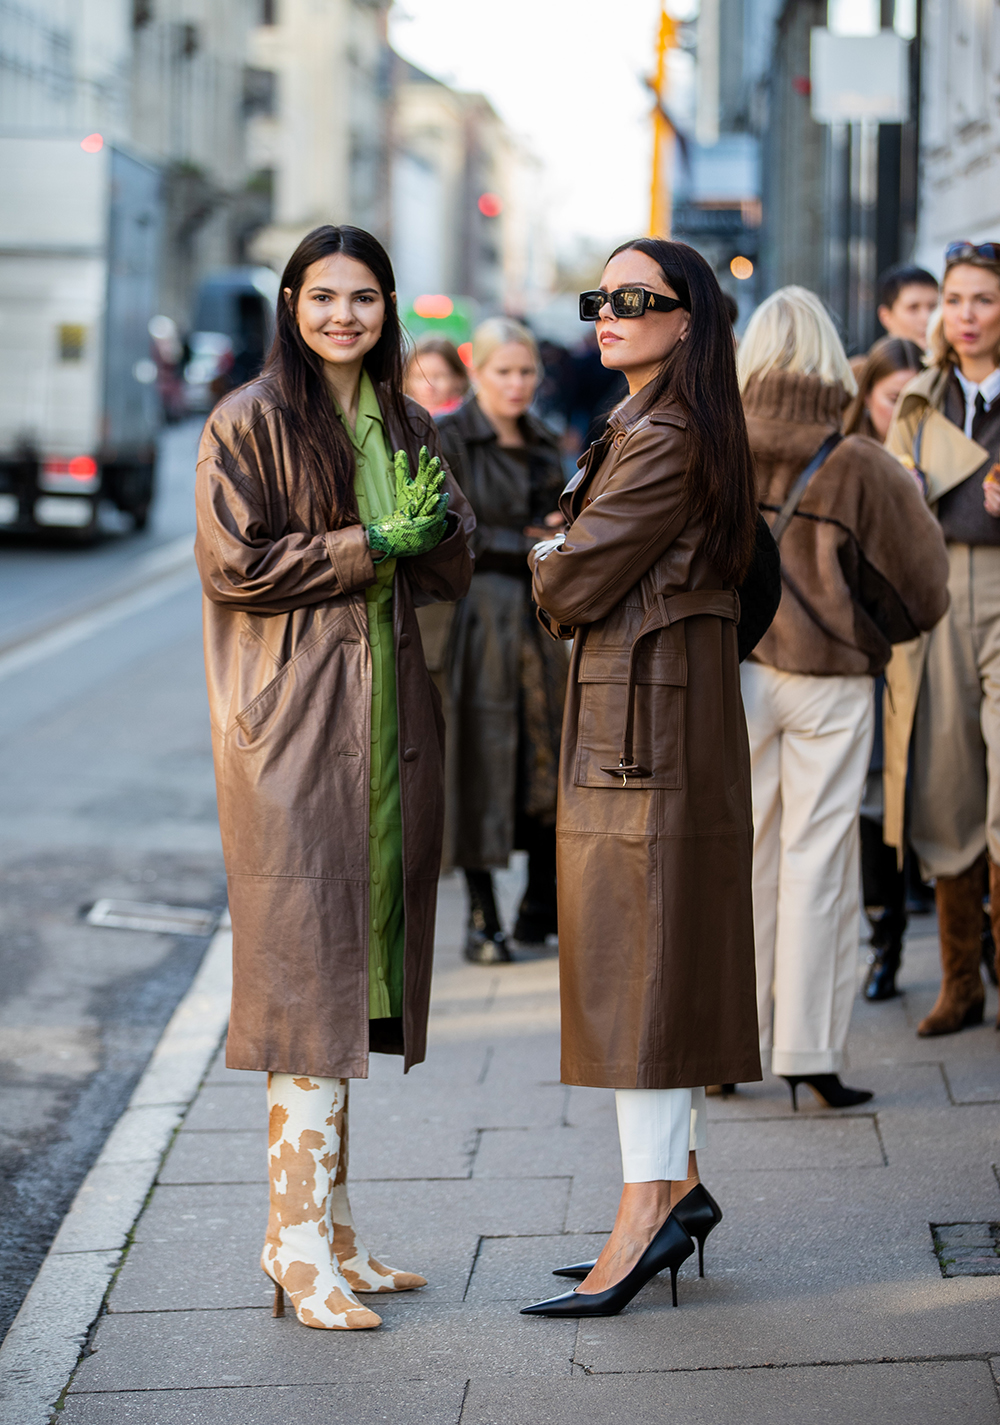 COPENHAGEN, DENMARK - JANUARY 29: Doina Ciobanu seen wearing brown coat, green dress, gloves with snake print, boots with cow print and Evangelie Smyrniotaki wearing brown coat, white pants, heels outside REMAIN Birger Christensen during Copenhagen Fashion Week Autumn/Winter 2020 Day 2 on January 29, 2020 in Copenhagen, Denmark. (Photo by Christian Vierig/Getty Images)